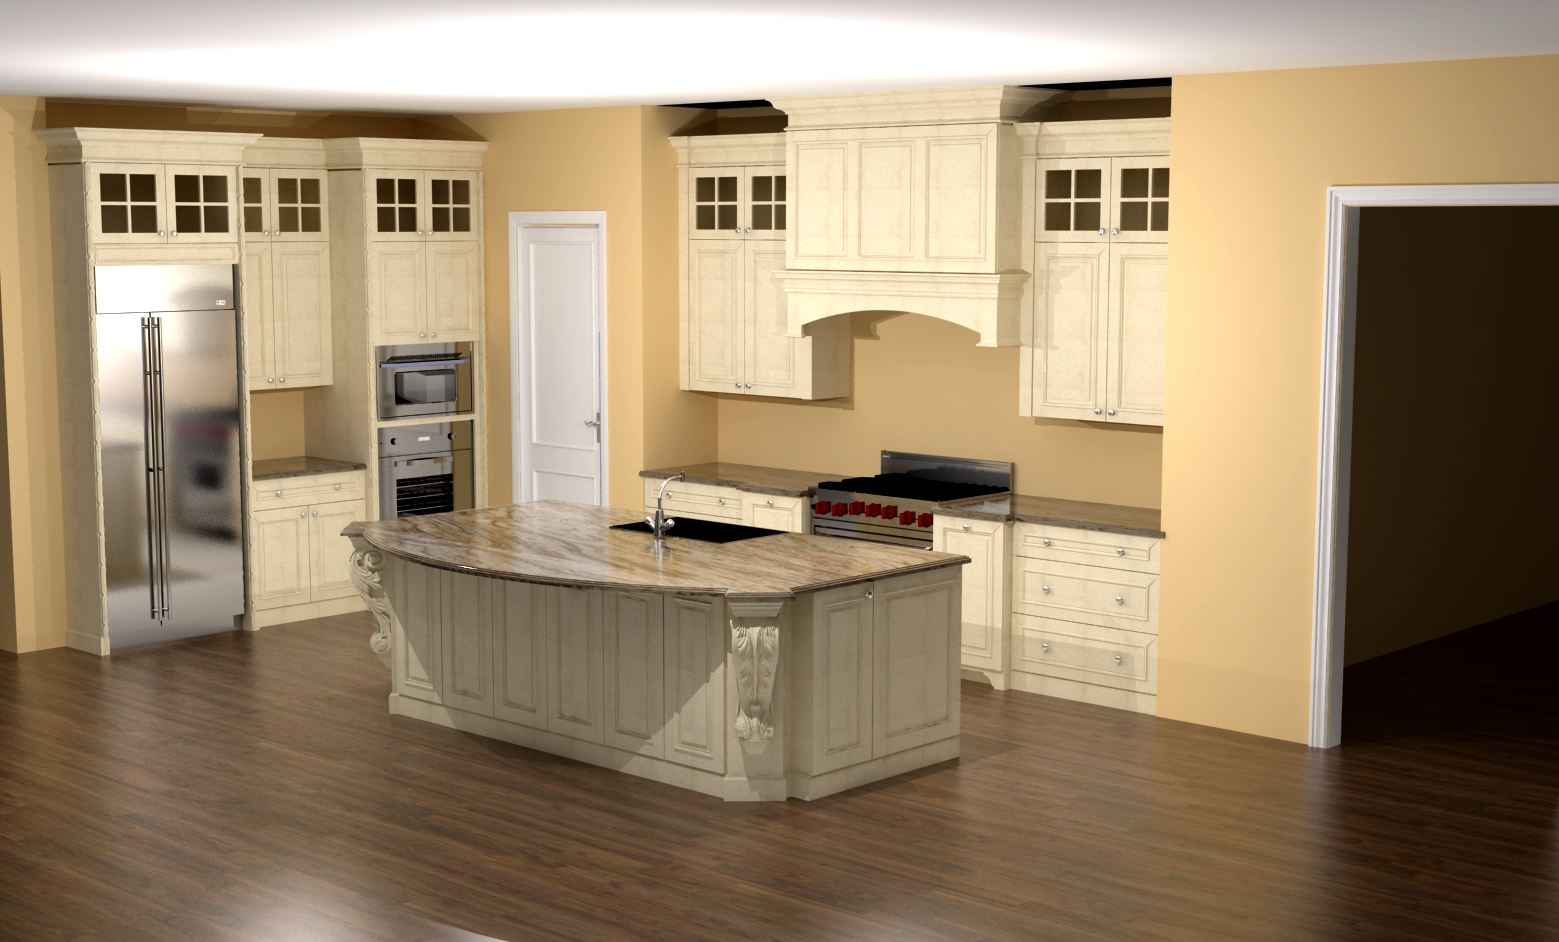 kitchen island corbels glazed kitchen with large island corbels and custom 1879